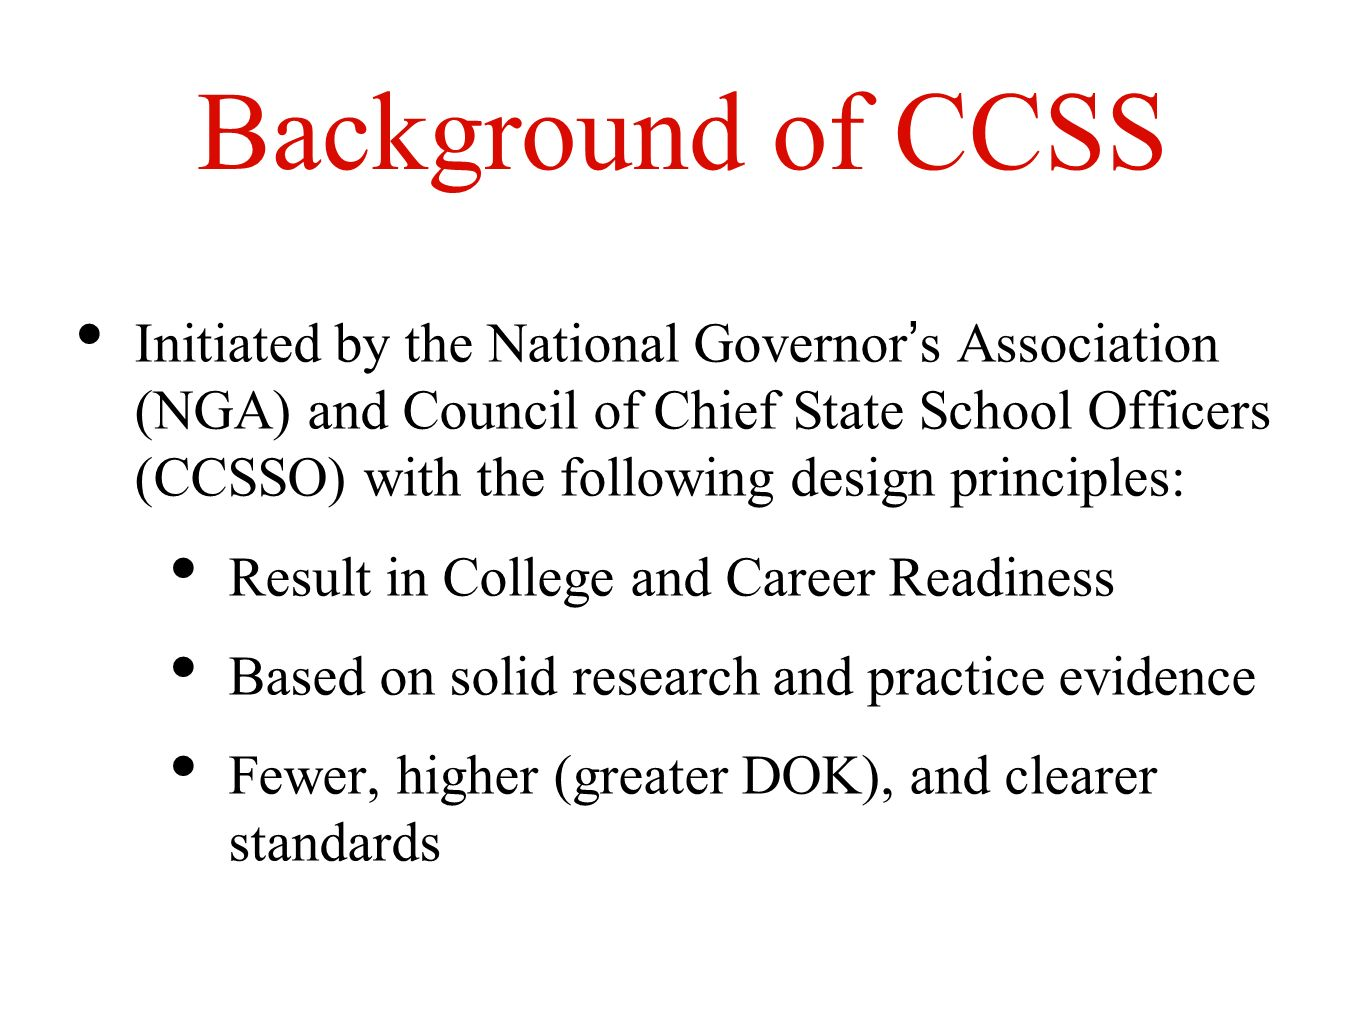 Background of CCSS Initiated by the National Governors Association (NGA) and Council of Chief State School Officers (CCSSO) with the following design